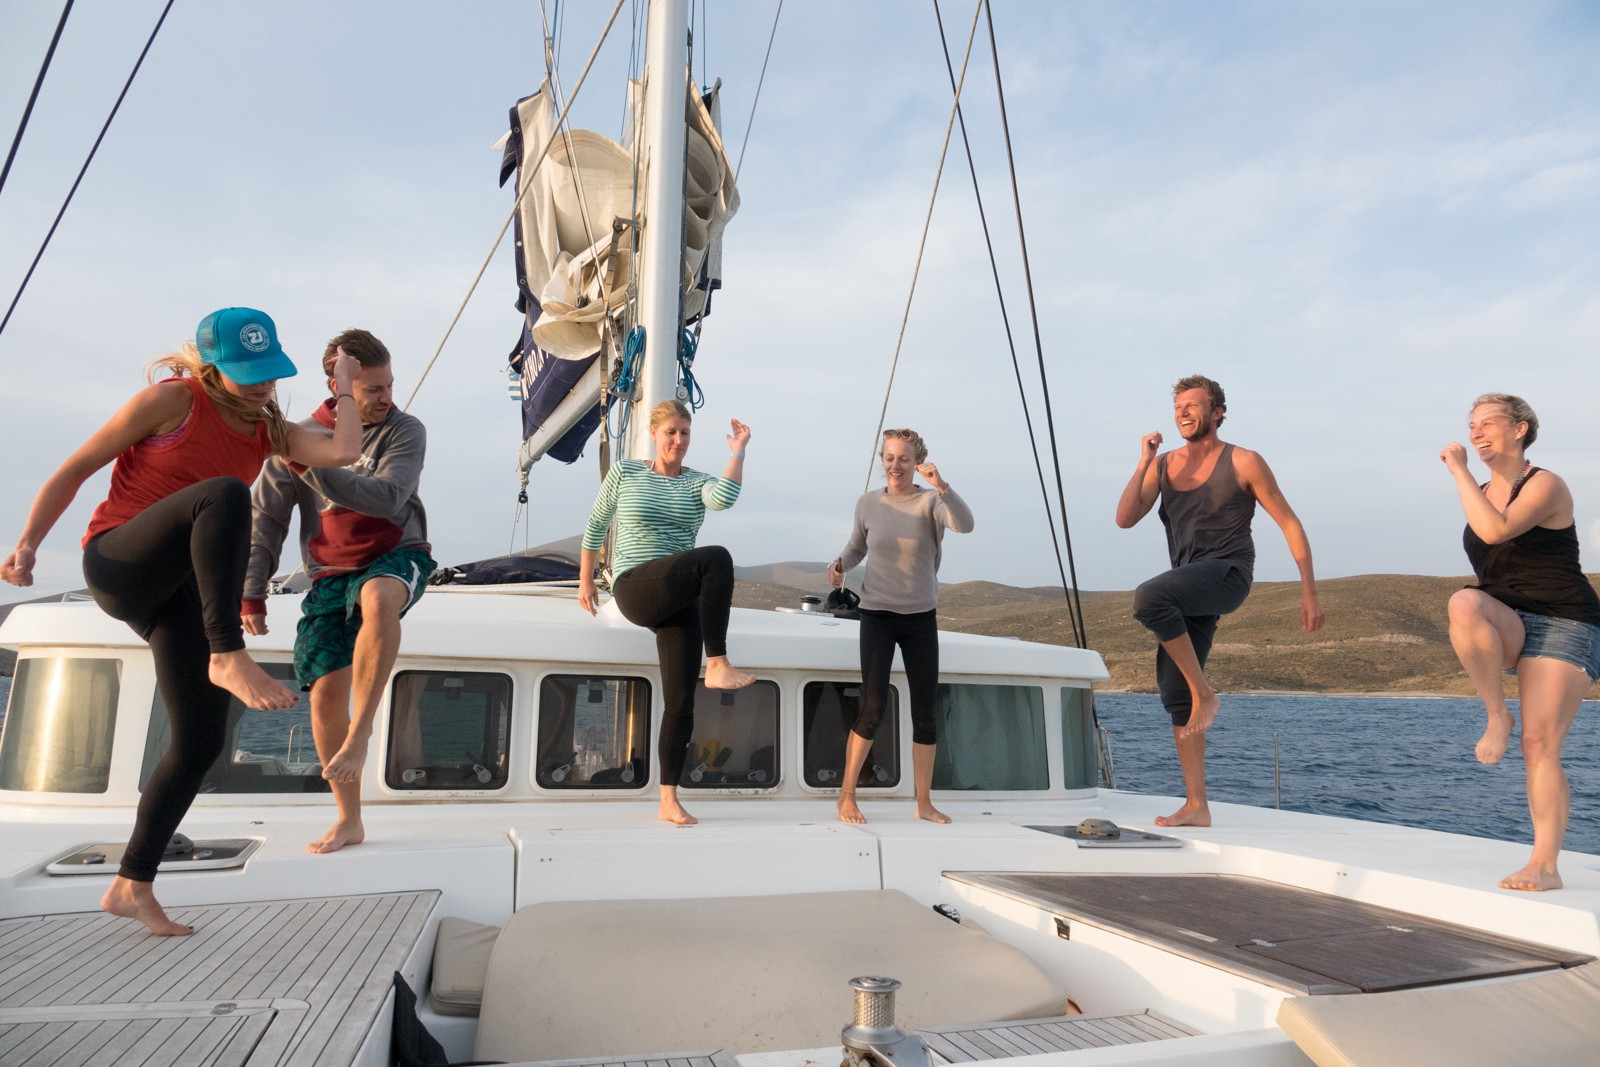 Coboat Disrupted The Work Place And Moved It To A Boat Harness For Sailboat Wanting This Movement Facilitate Connections With Change Makers Projects From All Over World